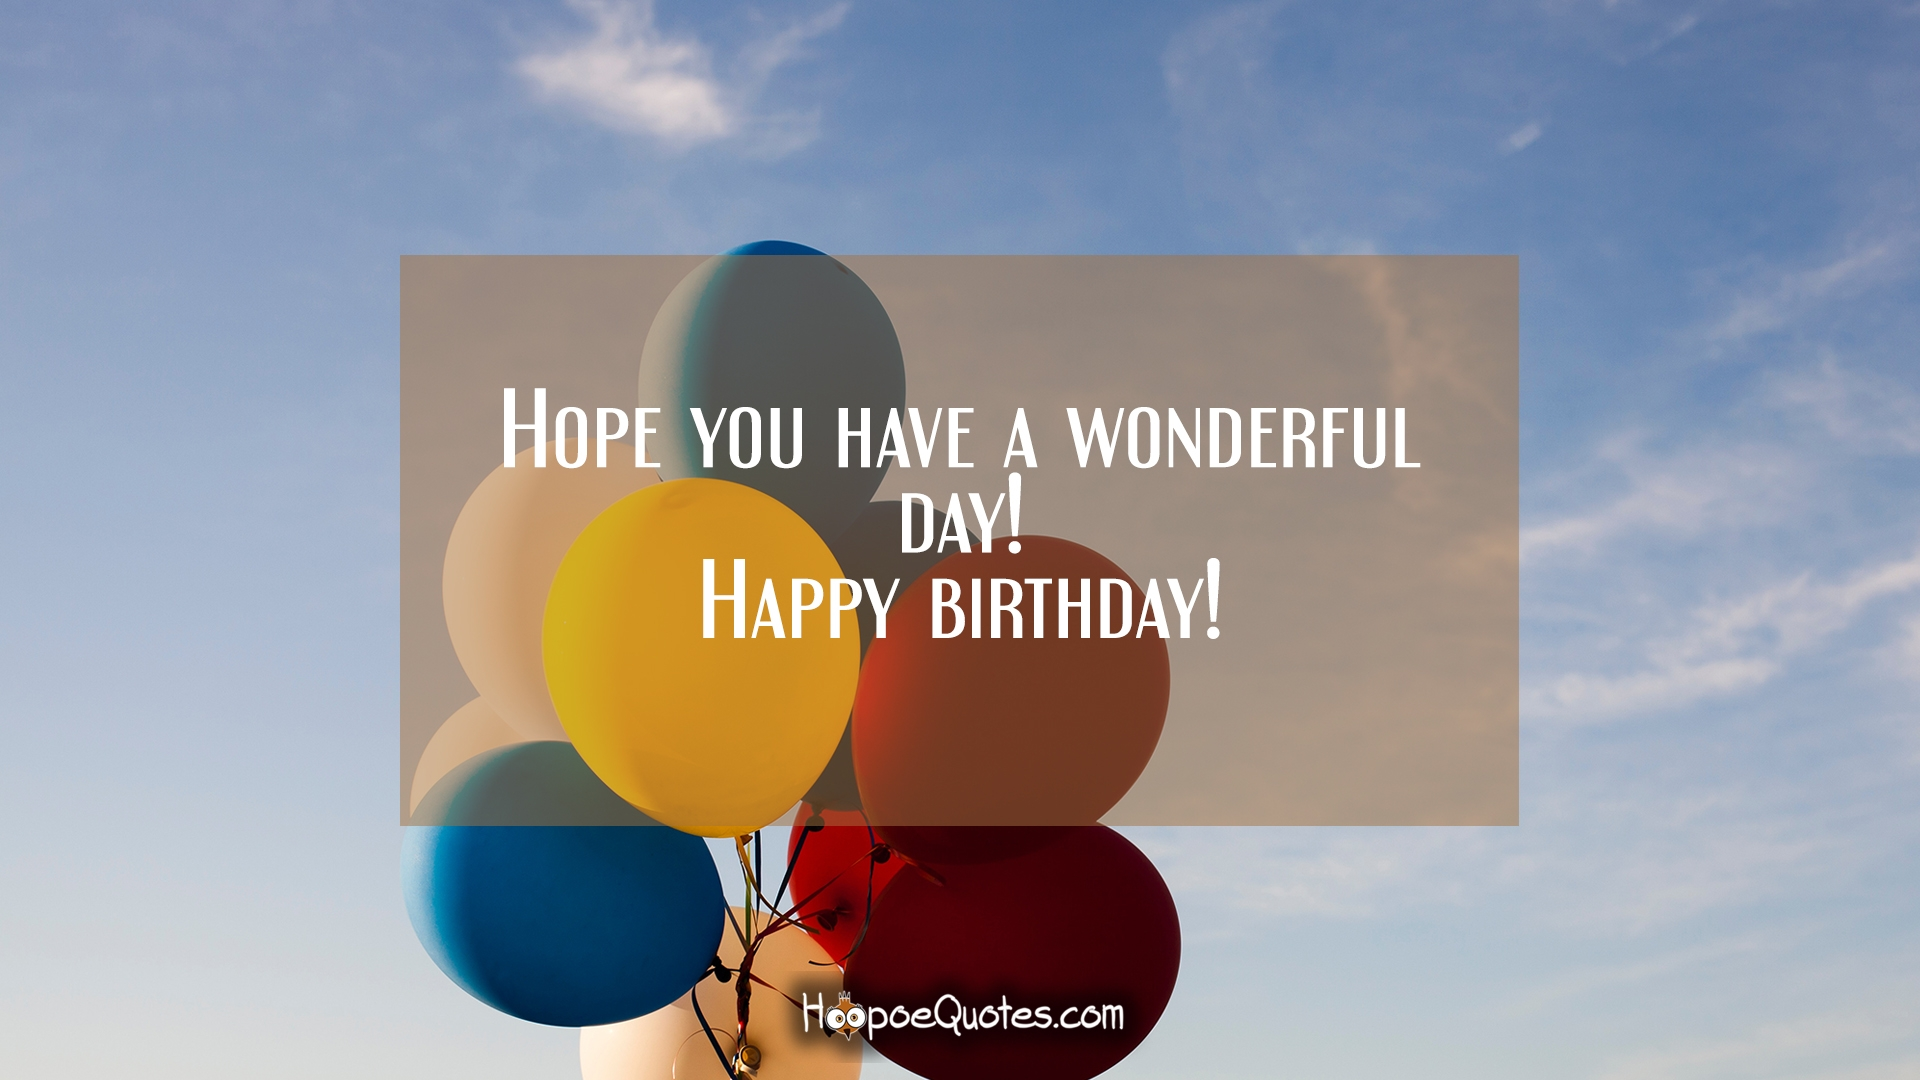 download facebook facebook google pinterest hope you have a wonderful day happy birthday